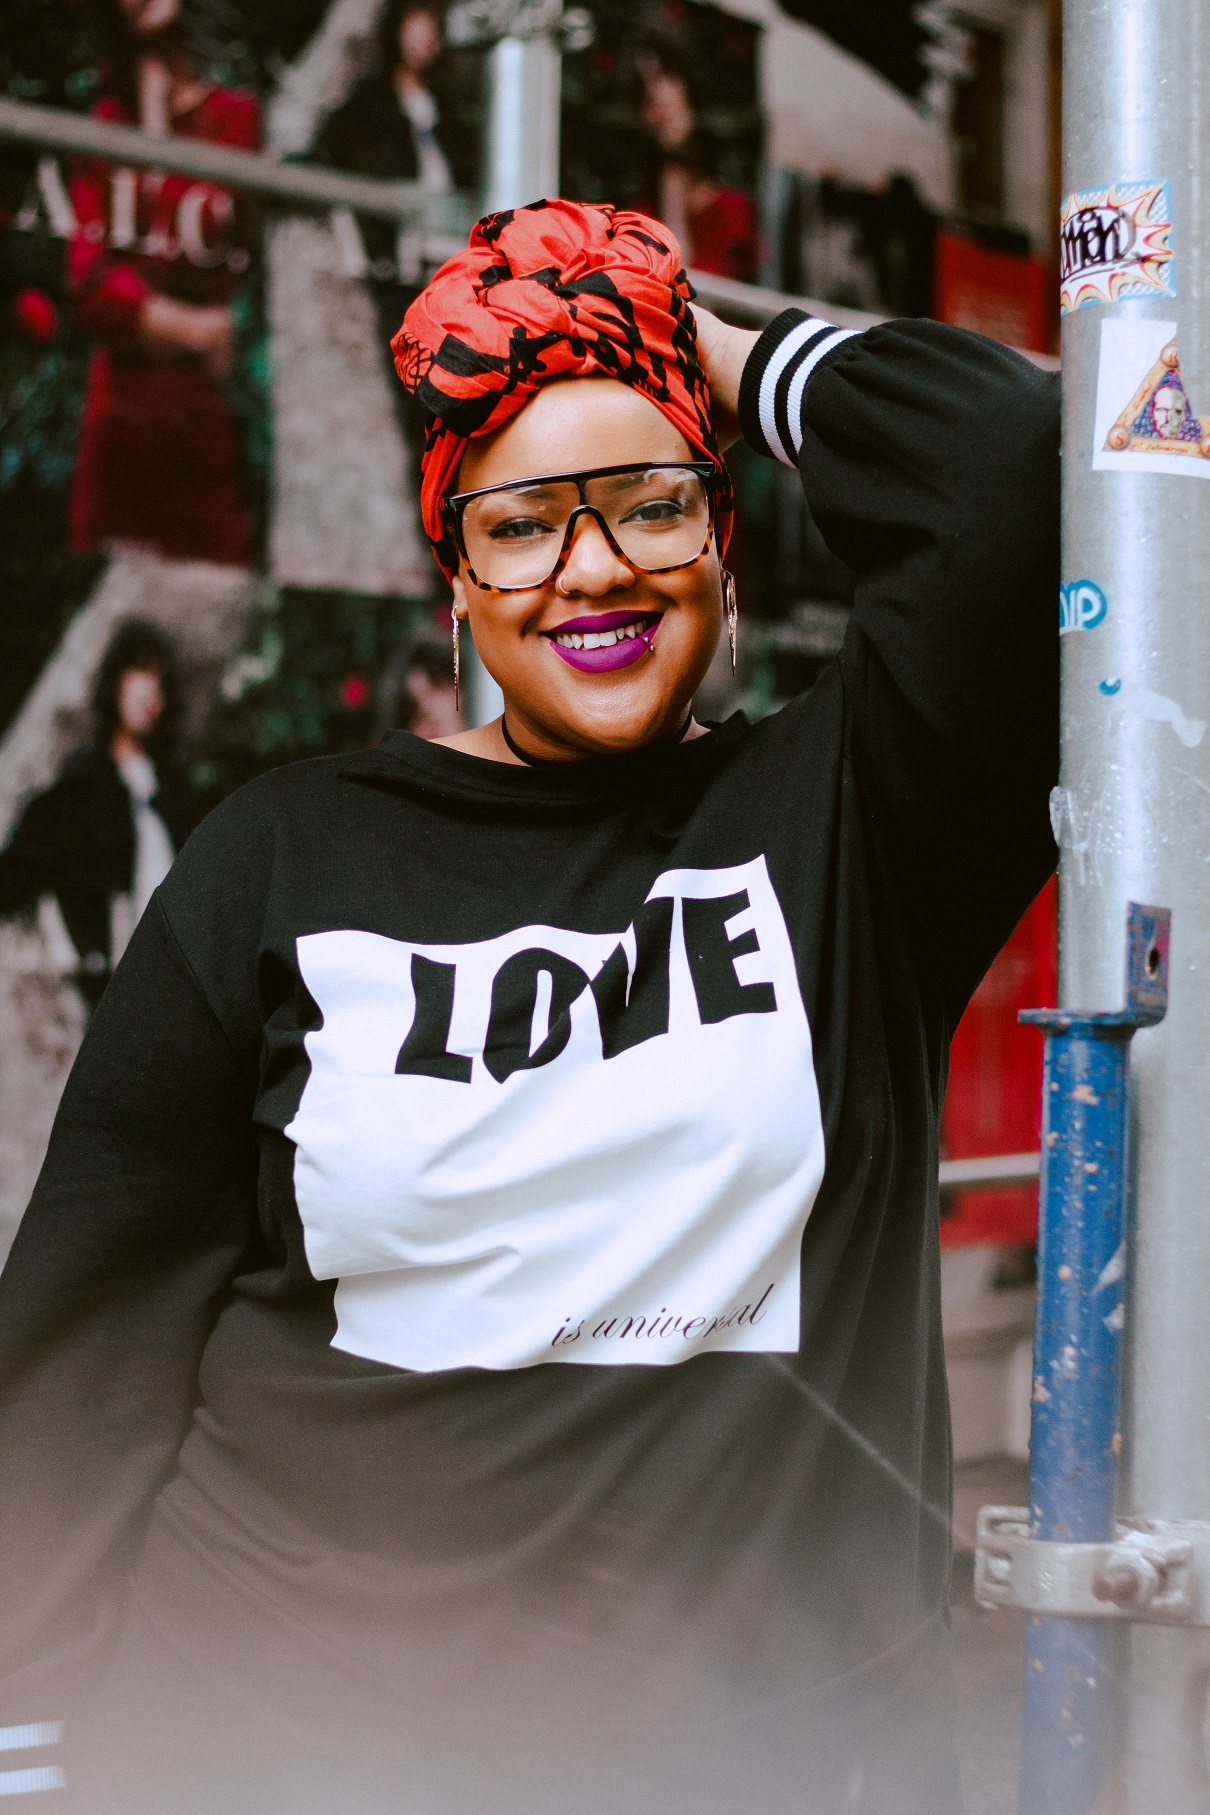 Plus-Size-Muslim-Model-Detroit-Body-Positive-Leah-Vernon-Turbanista-New-York-3.JPG